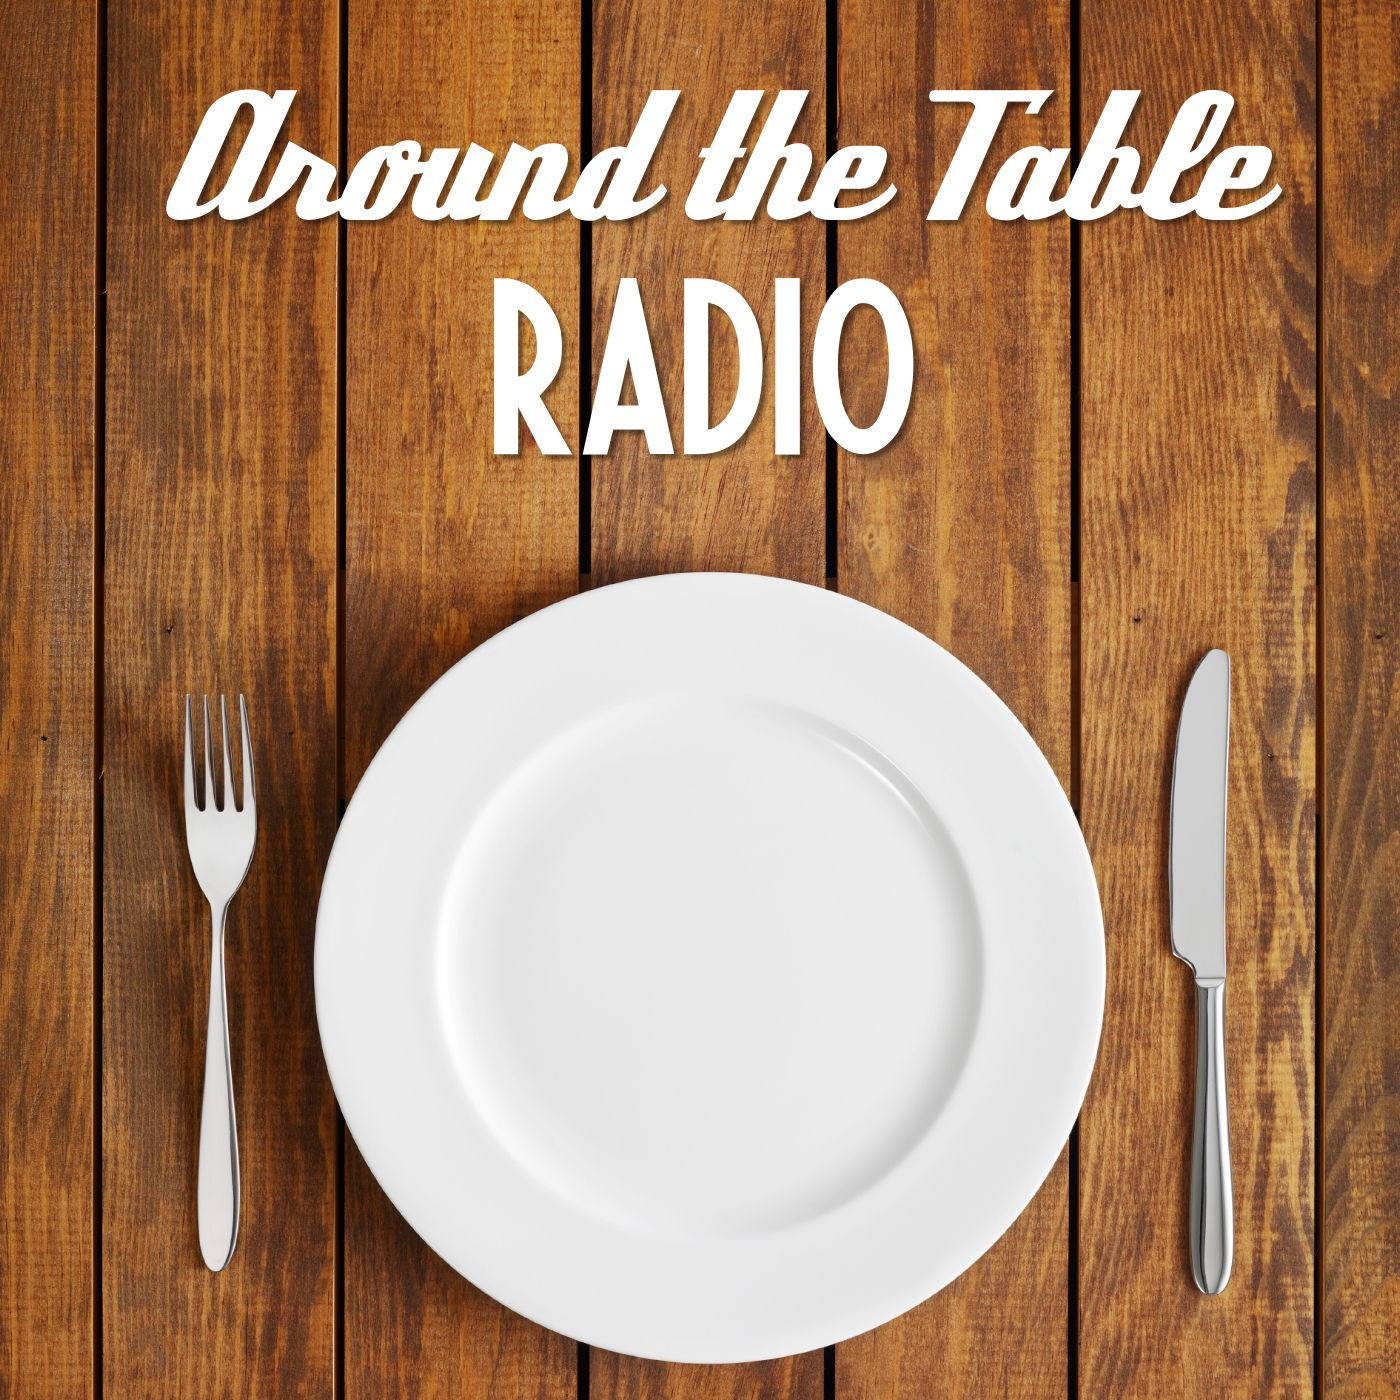 ATT054 - Around the Table with Tommy Waller and The Oyster Bed